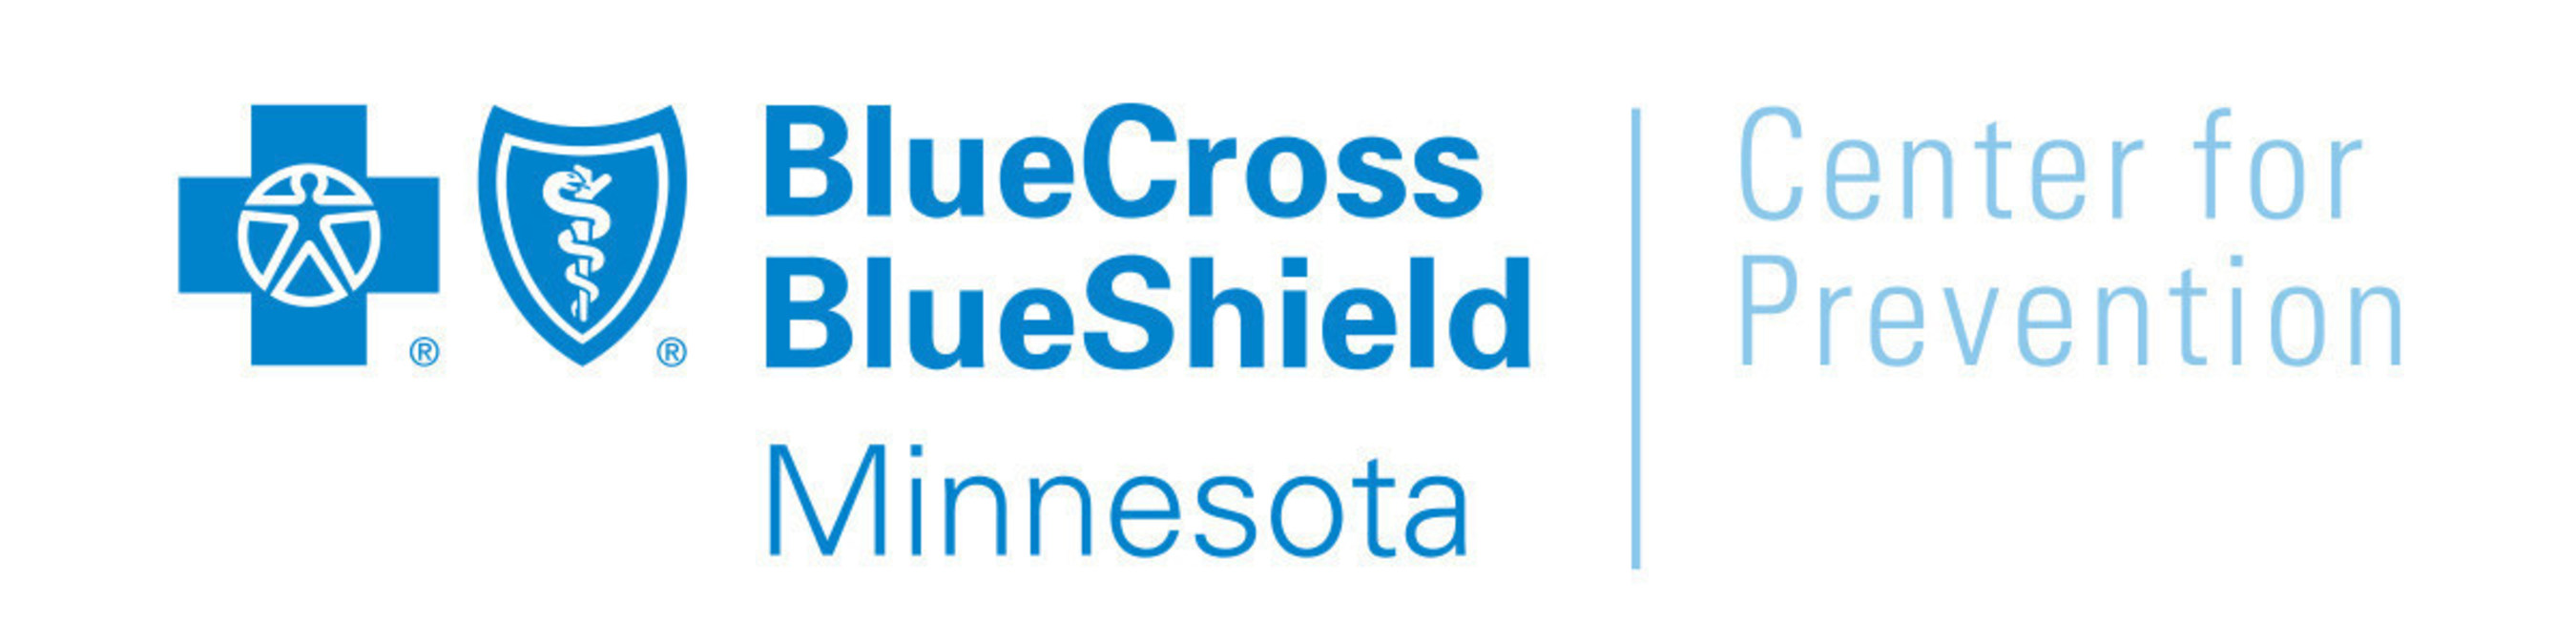 Blue Cross and Blue Shield of Minnesota, Center for Prevention